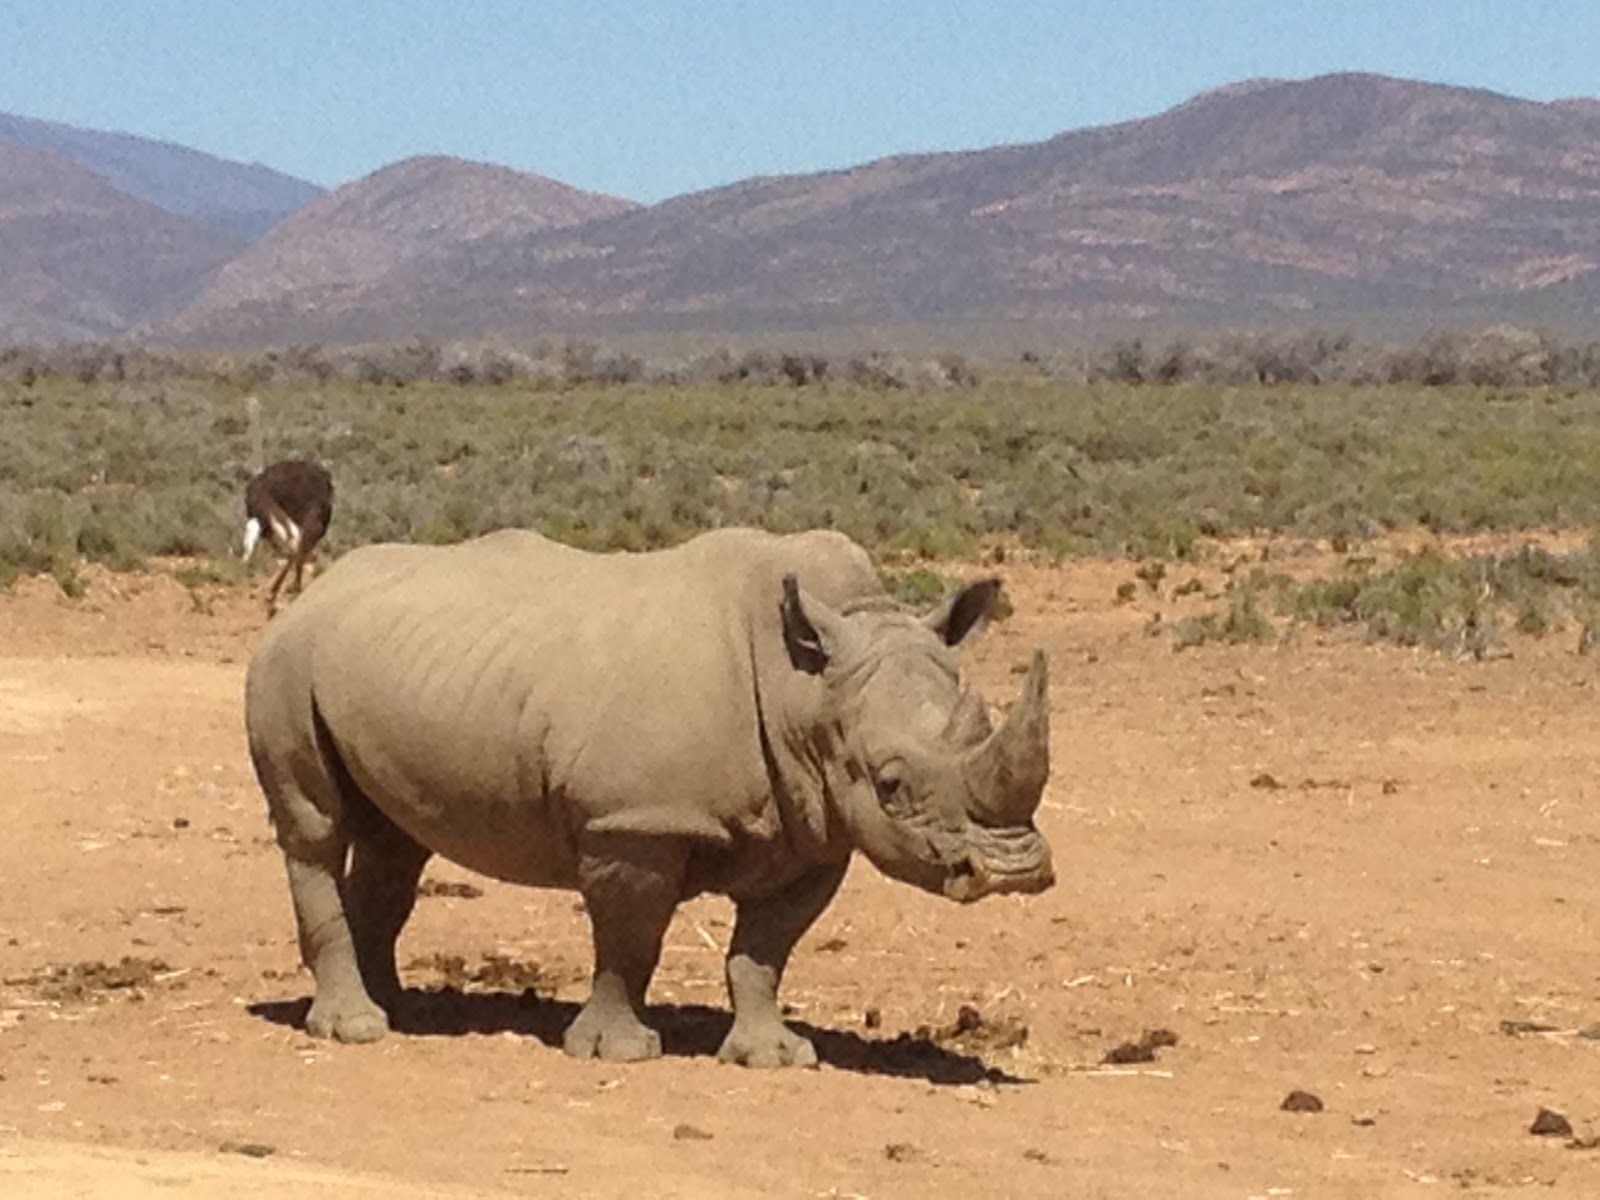 OneDay Safari to Inverdoorn in the Great Karoo Desert of